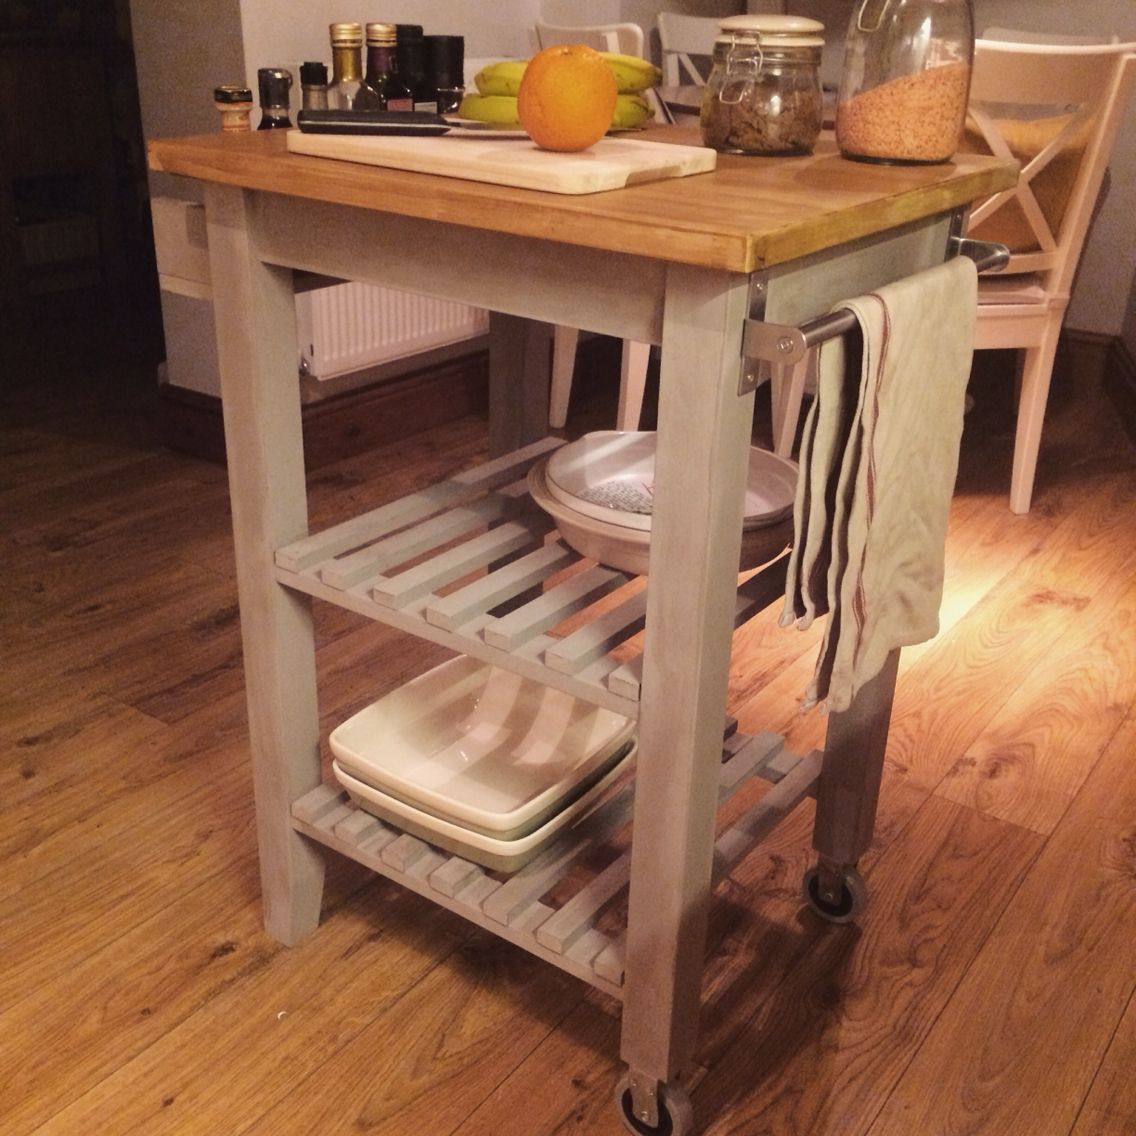 Ikea Küche Wagen Bekvam Kitchen Cart Hack Something Like This Could Work